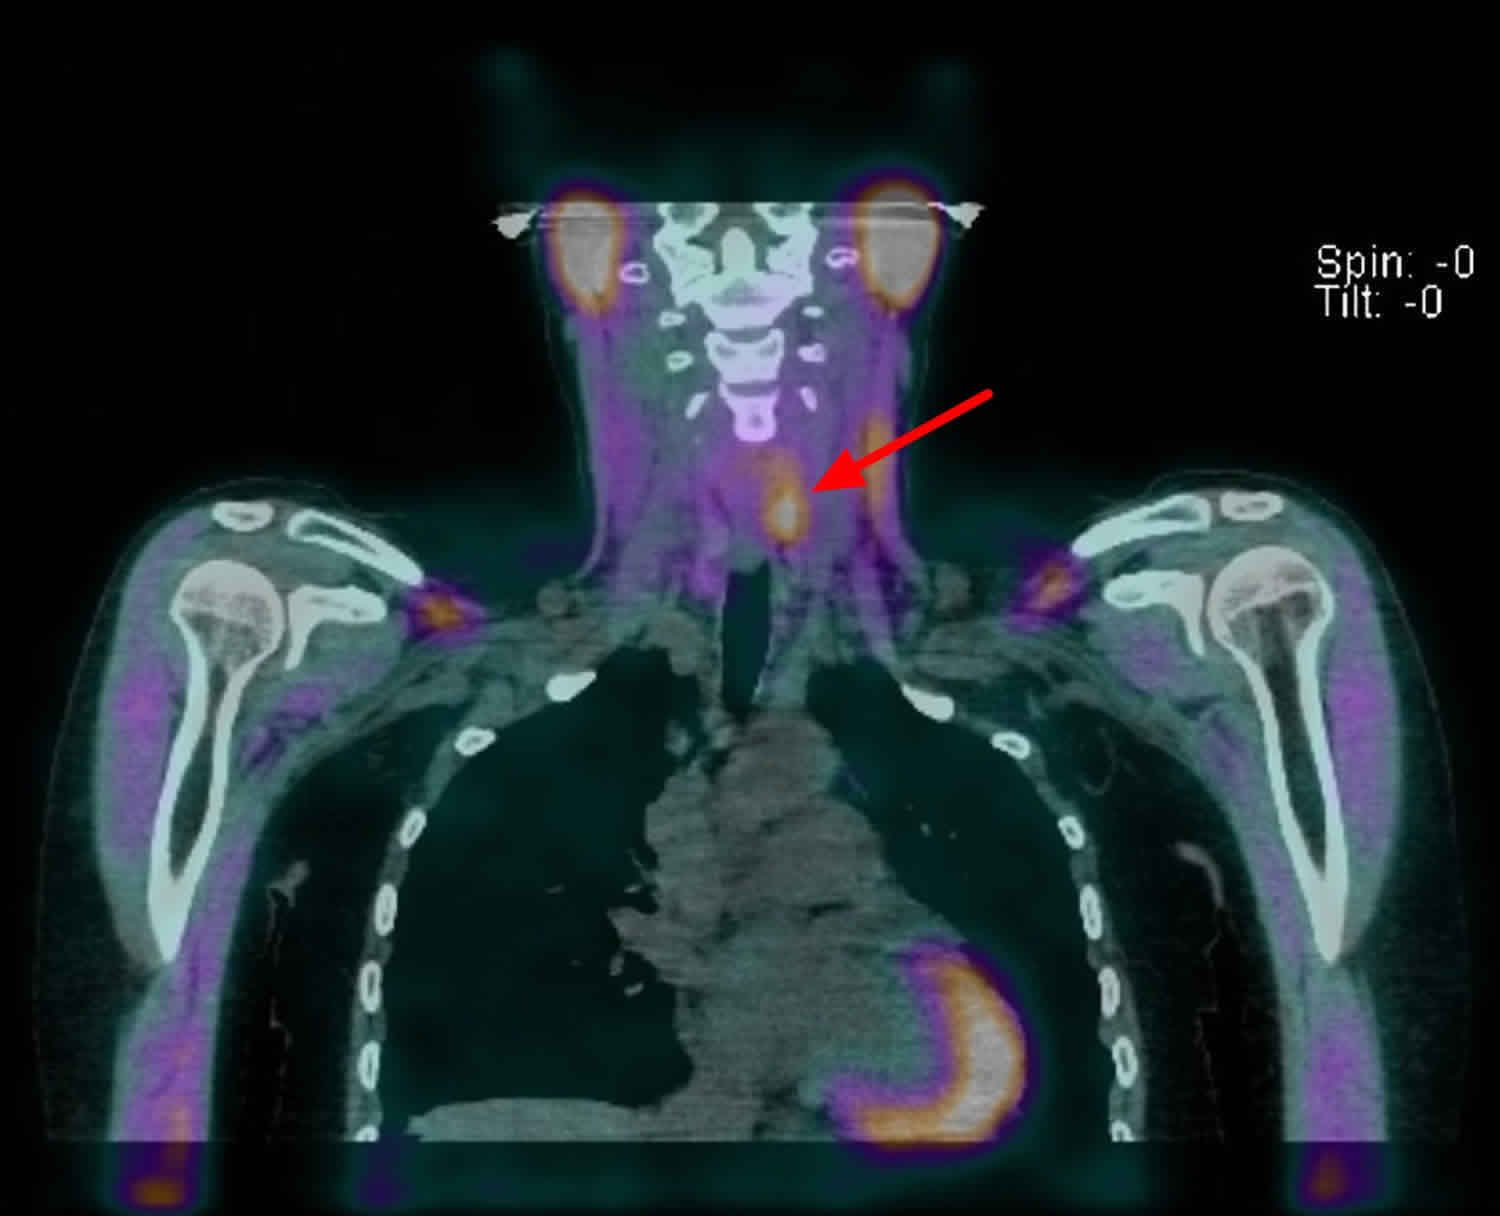 Parathyroid adenoma SPECT scan